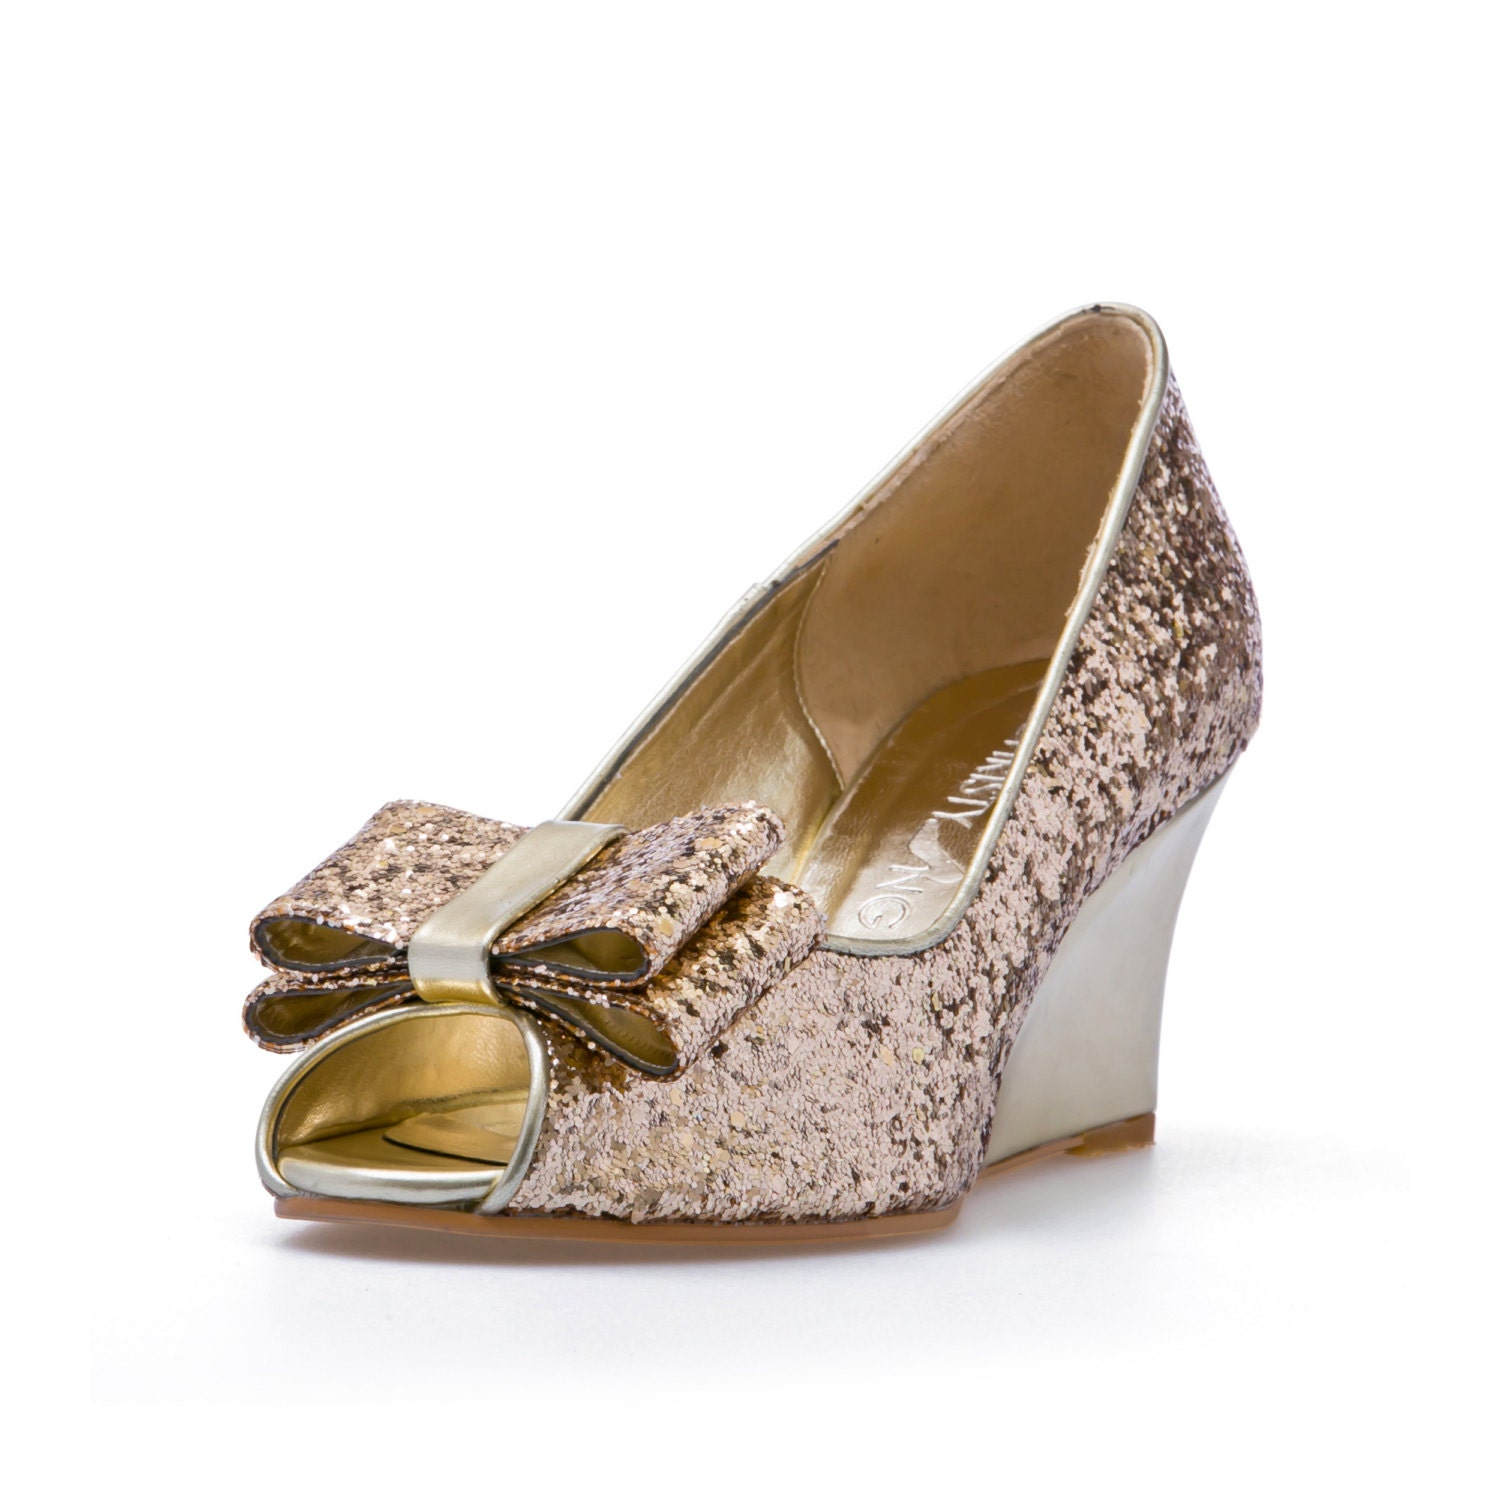 Ashley Gold Glitter Wedges Wedding Shoes Gold Glitter